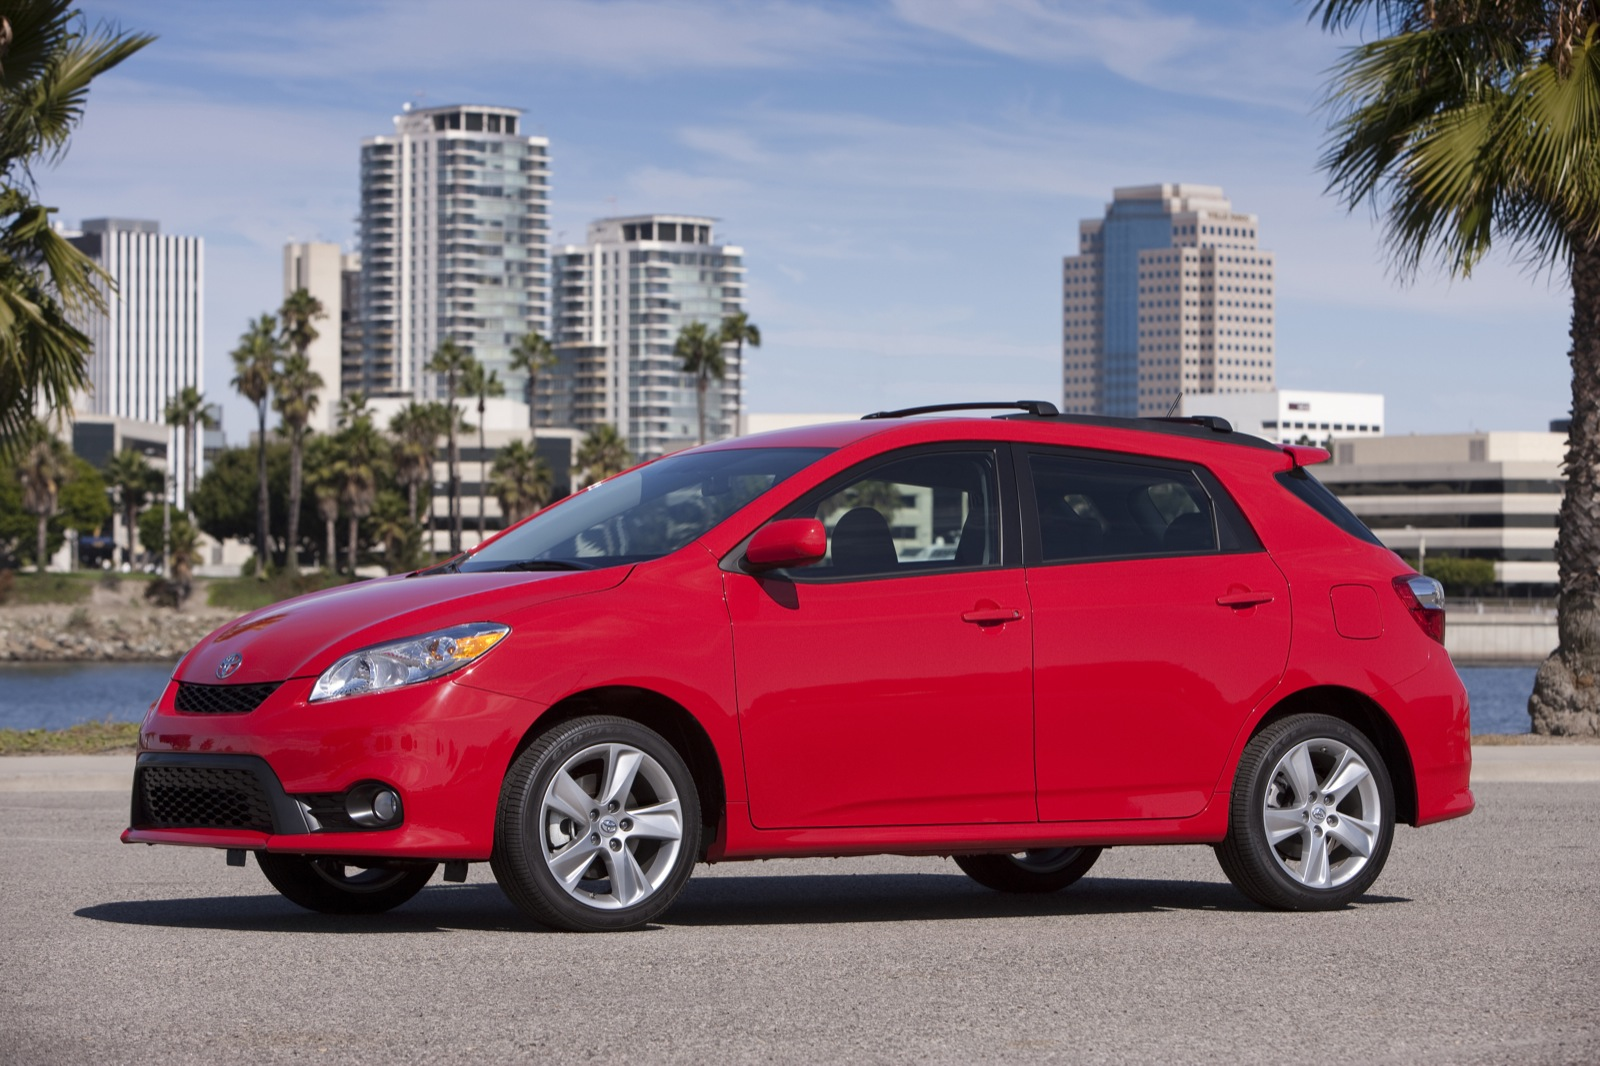 2013 Toyota Matrix Review Ratings Specs Prices And HD Wallpapers Download free images and photos [musssic.tk]